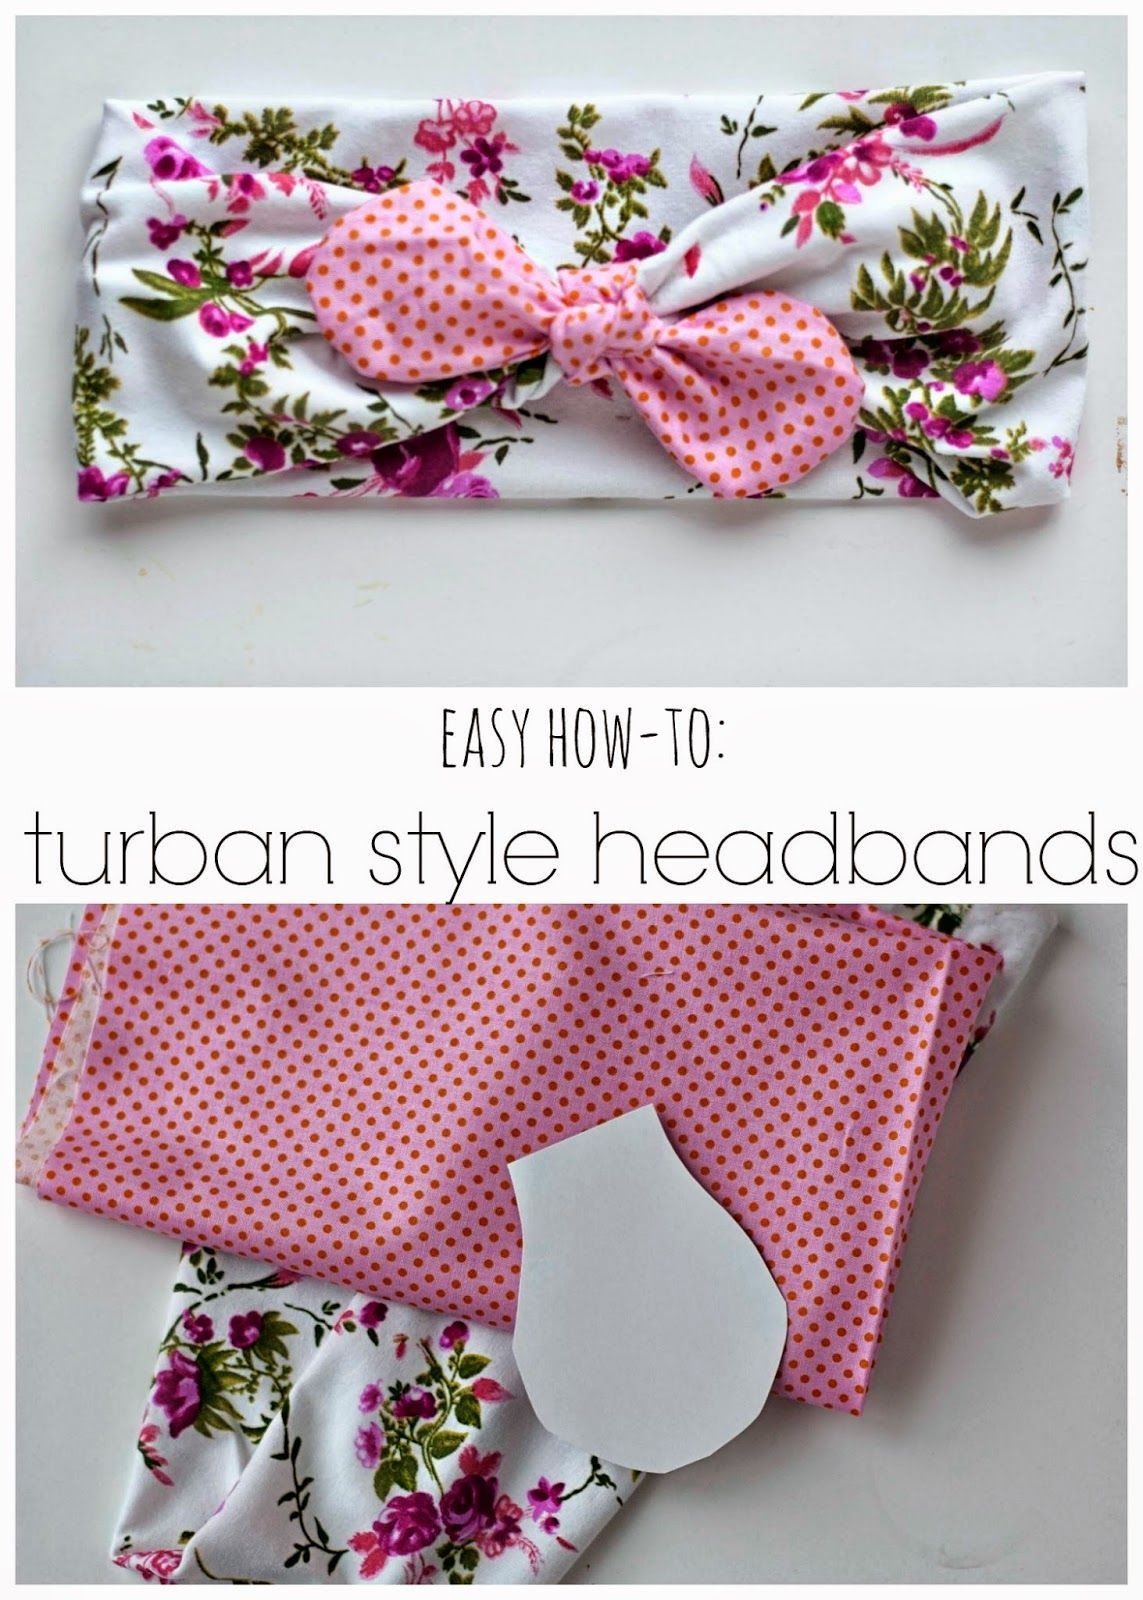 Turban style headband diy craft headband crafts diy crafts do it diy sewing projects solutioingenieria Images